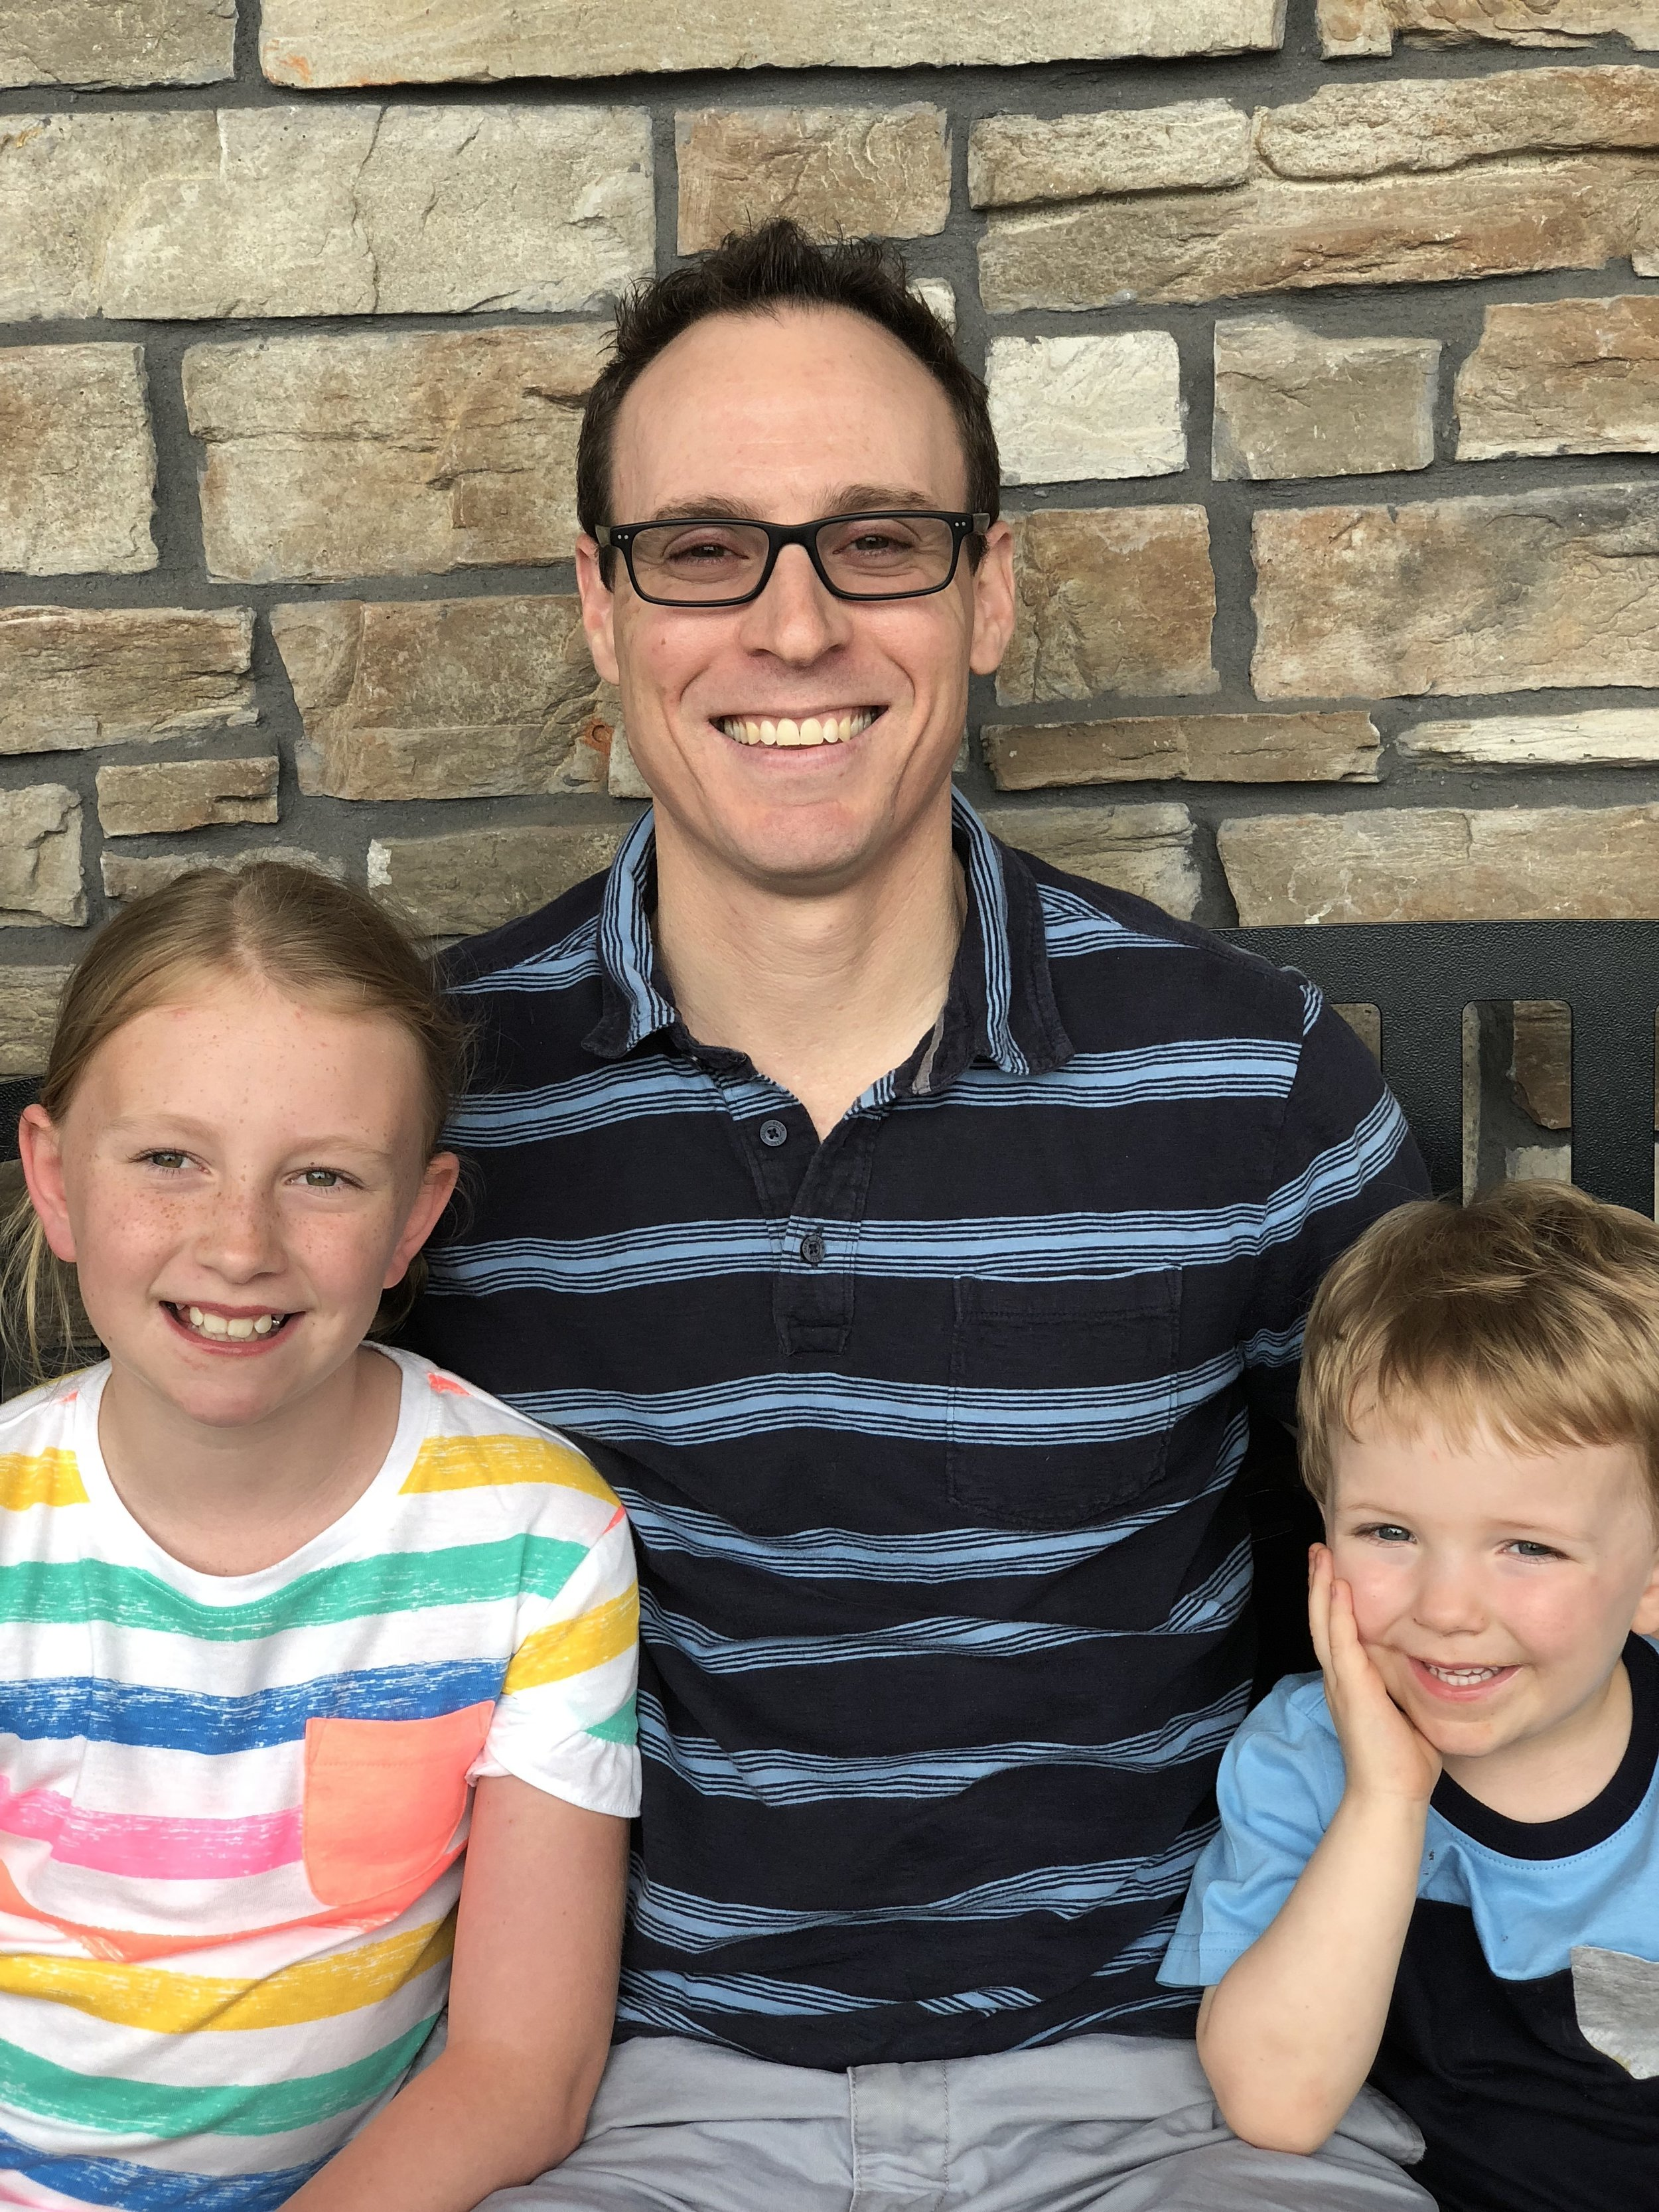 Caleb Brown, Adoptive Dad  I am a foster parent and adopted two children (sibling group) from foster care. I have a passion for helping people and love kids.